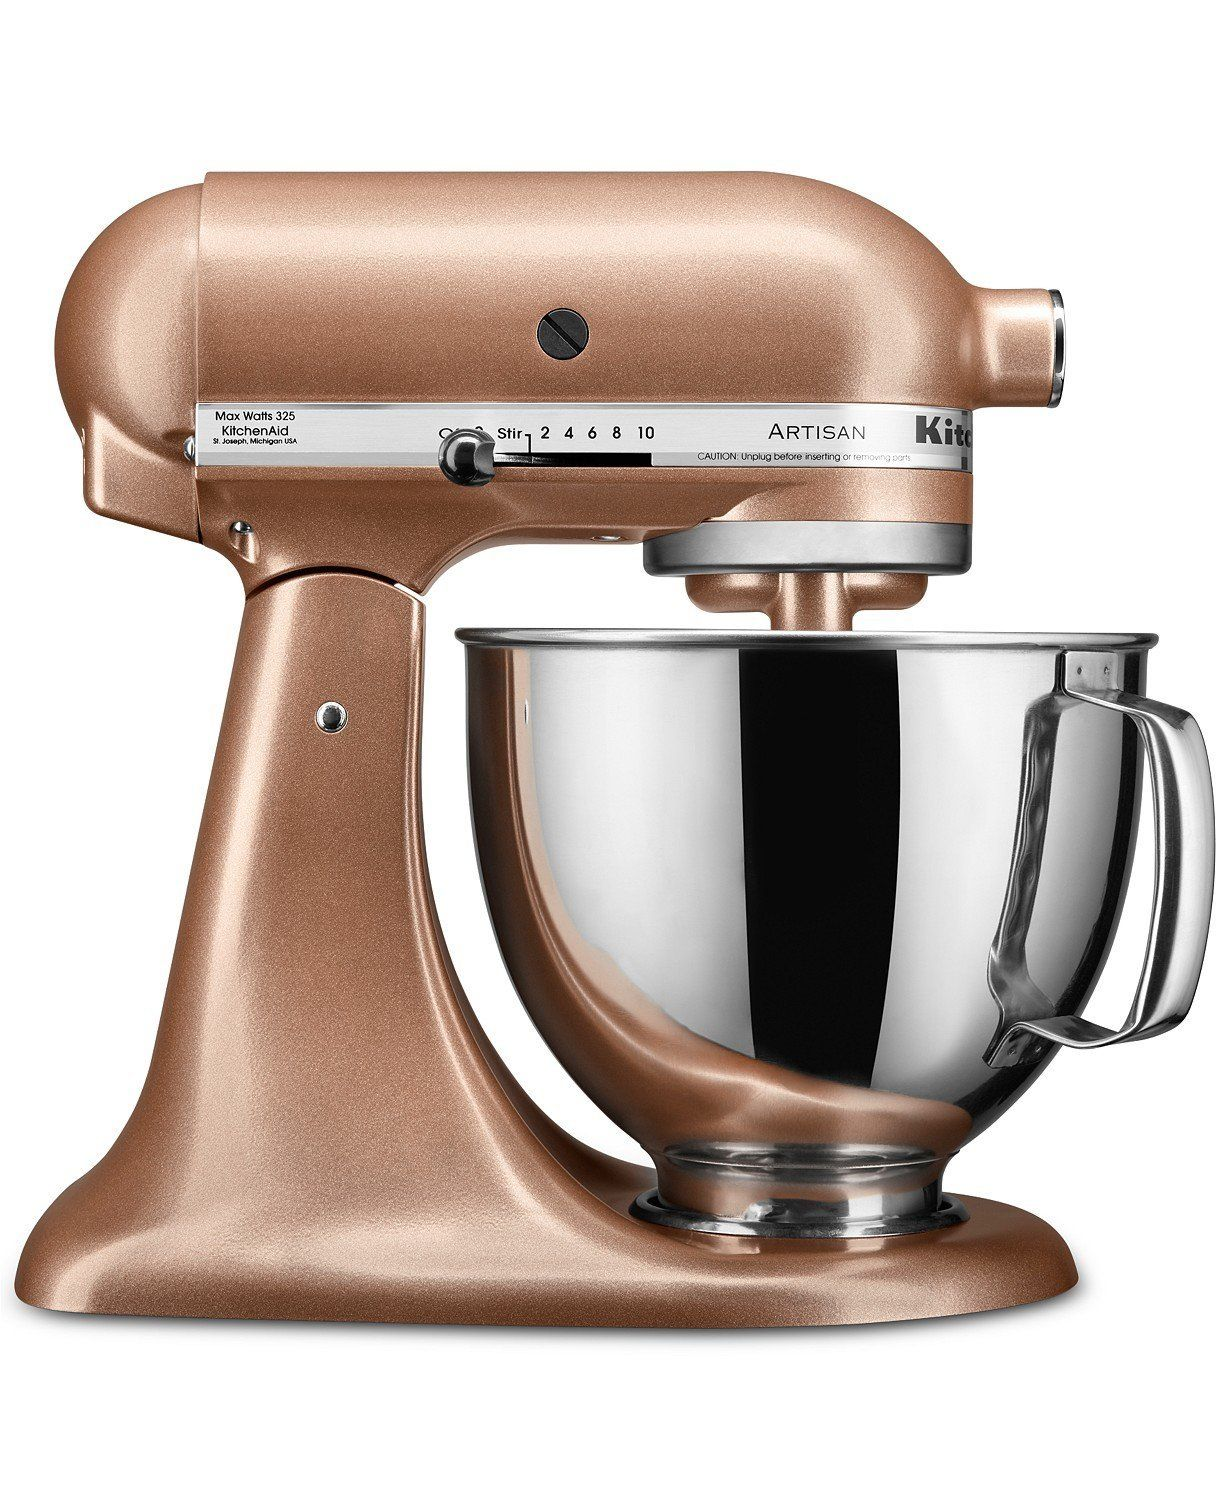 Black Friday Deutschland 2017 Where To Buy A Kitchenaid Mixer For Cheap On Black Friday